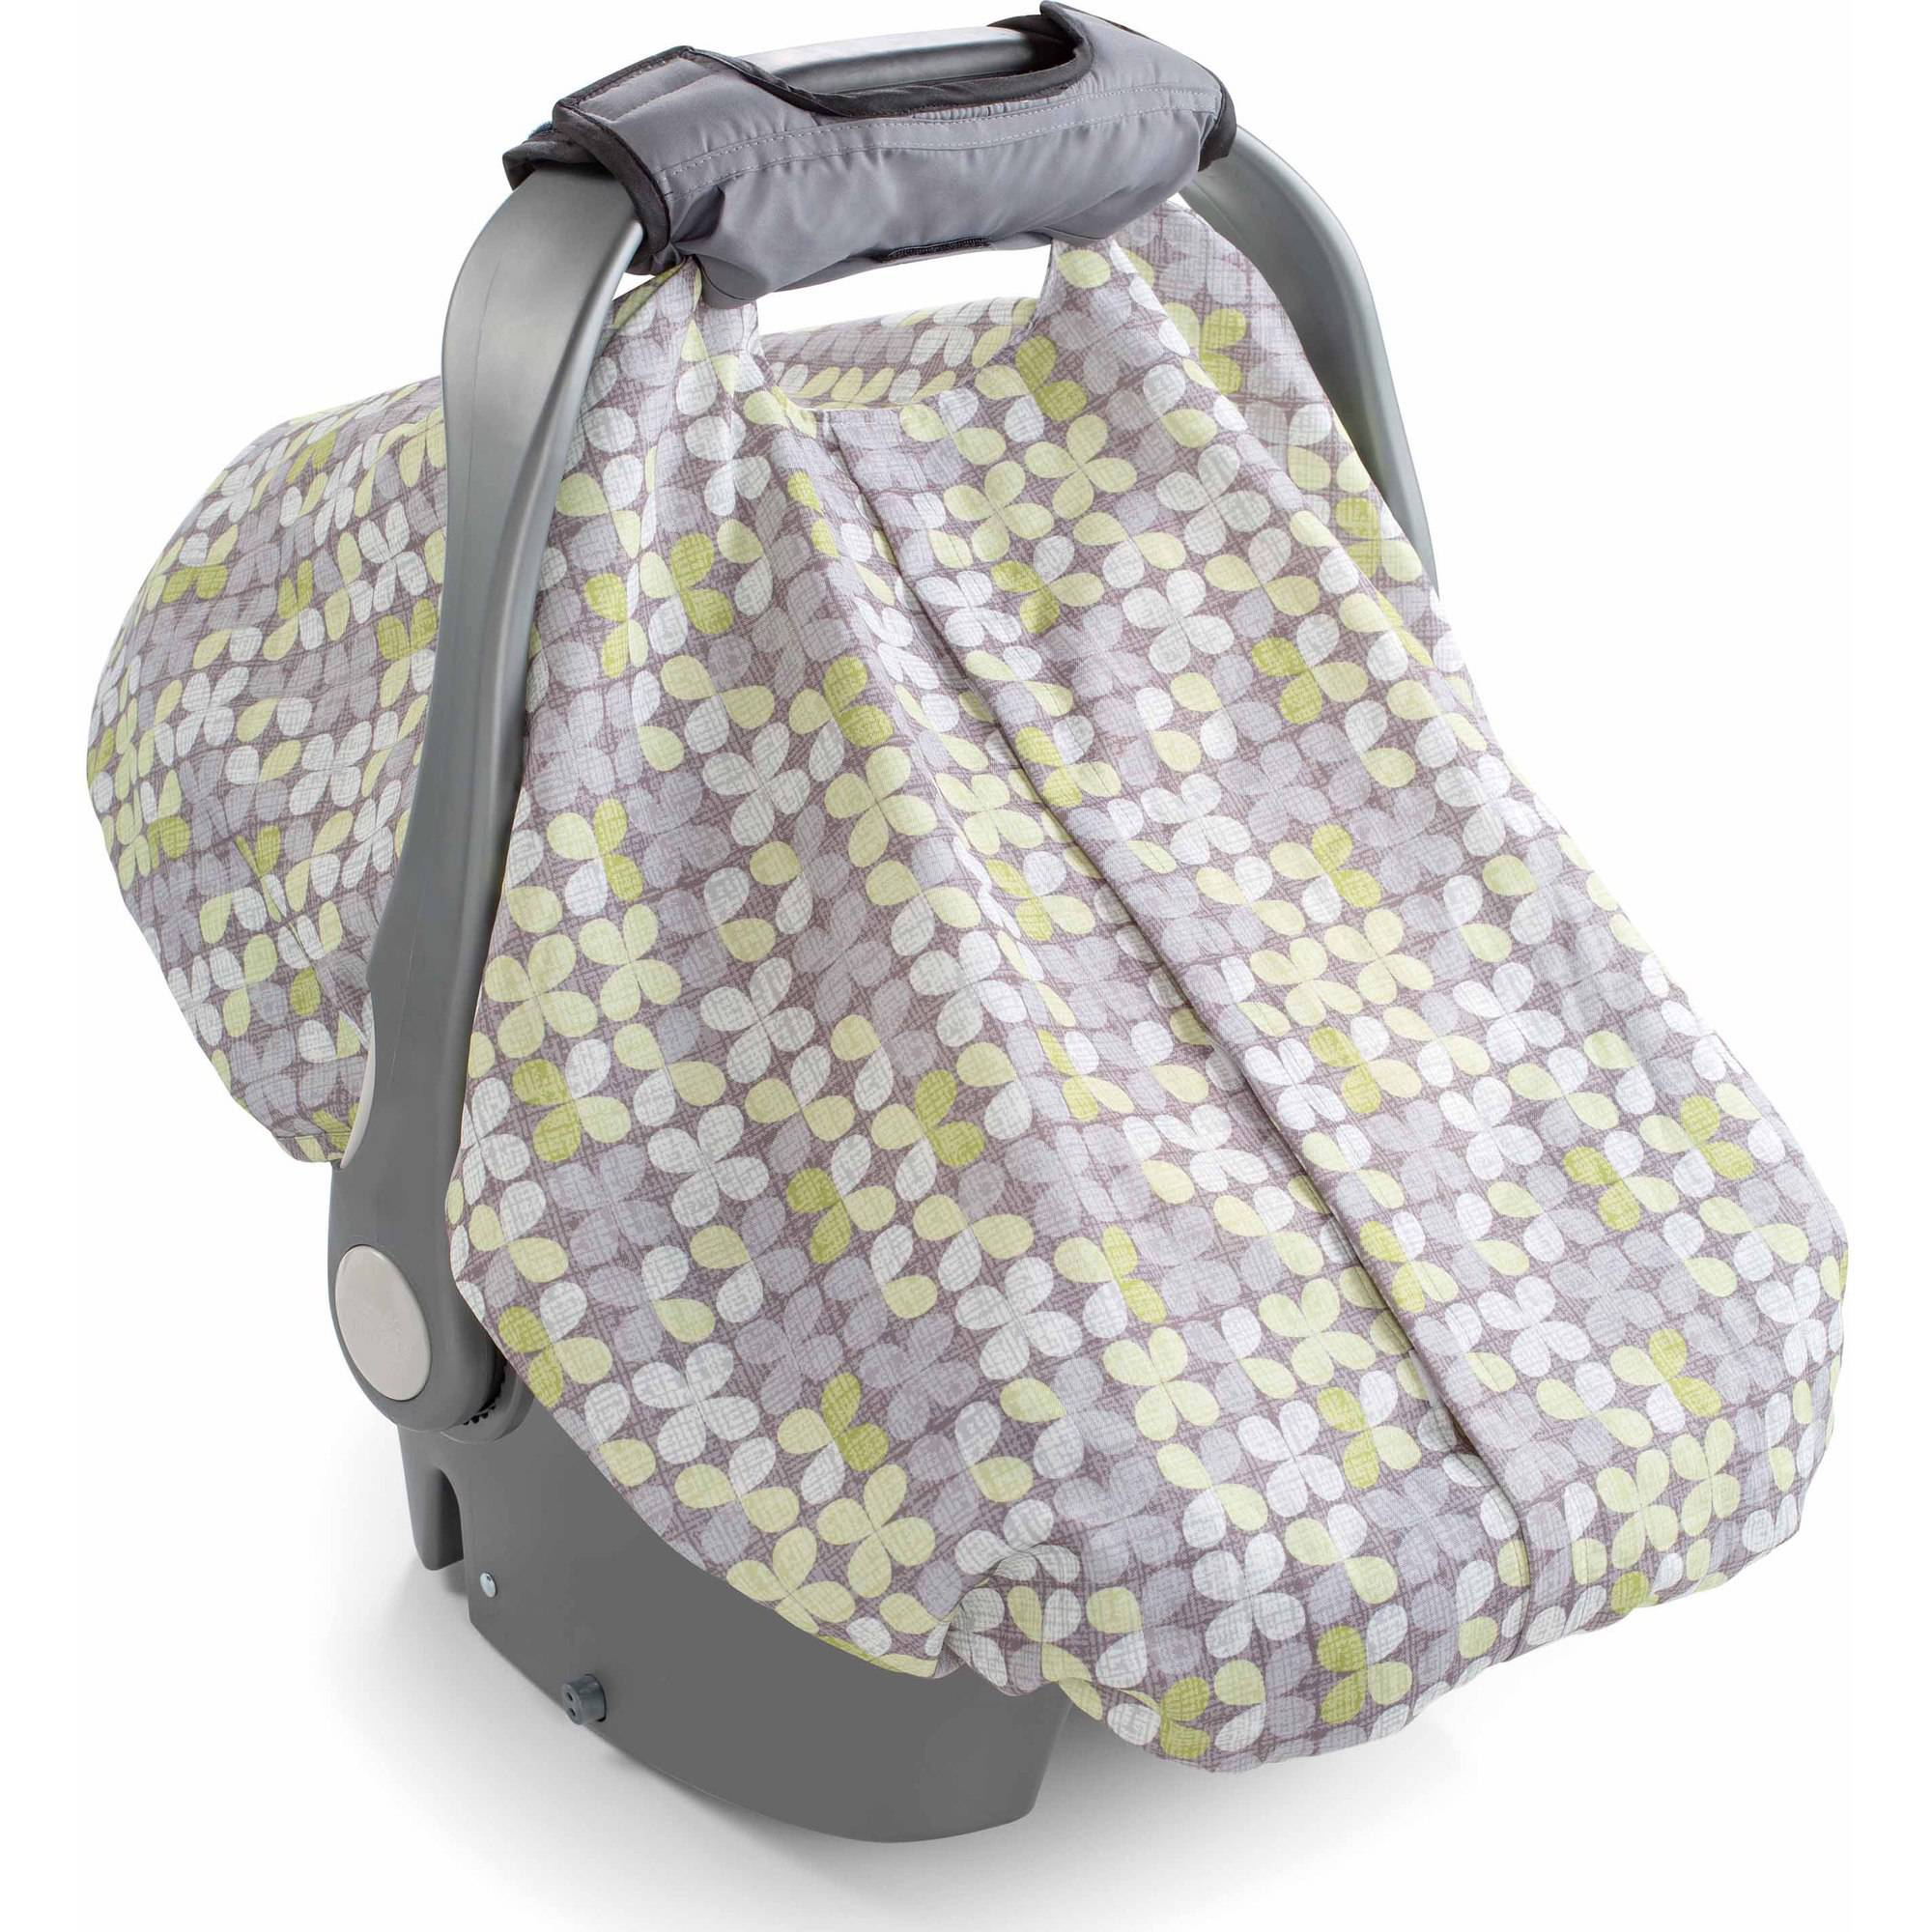 Summer Infant 2-in-1 Carry and Cover